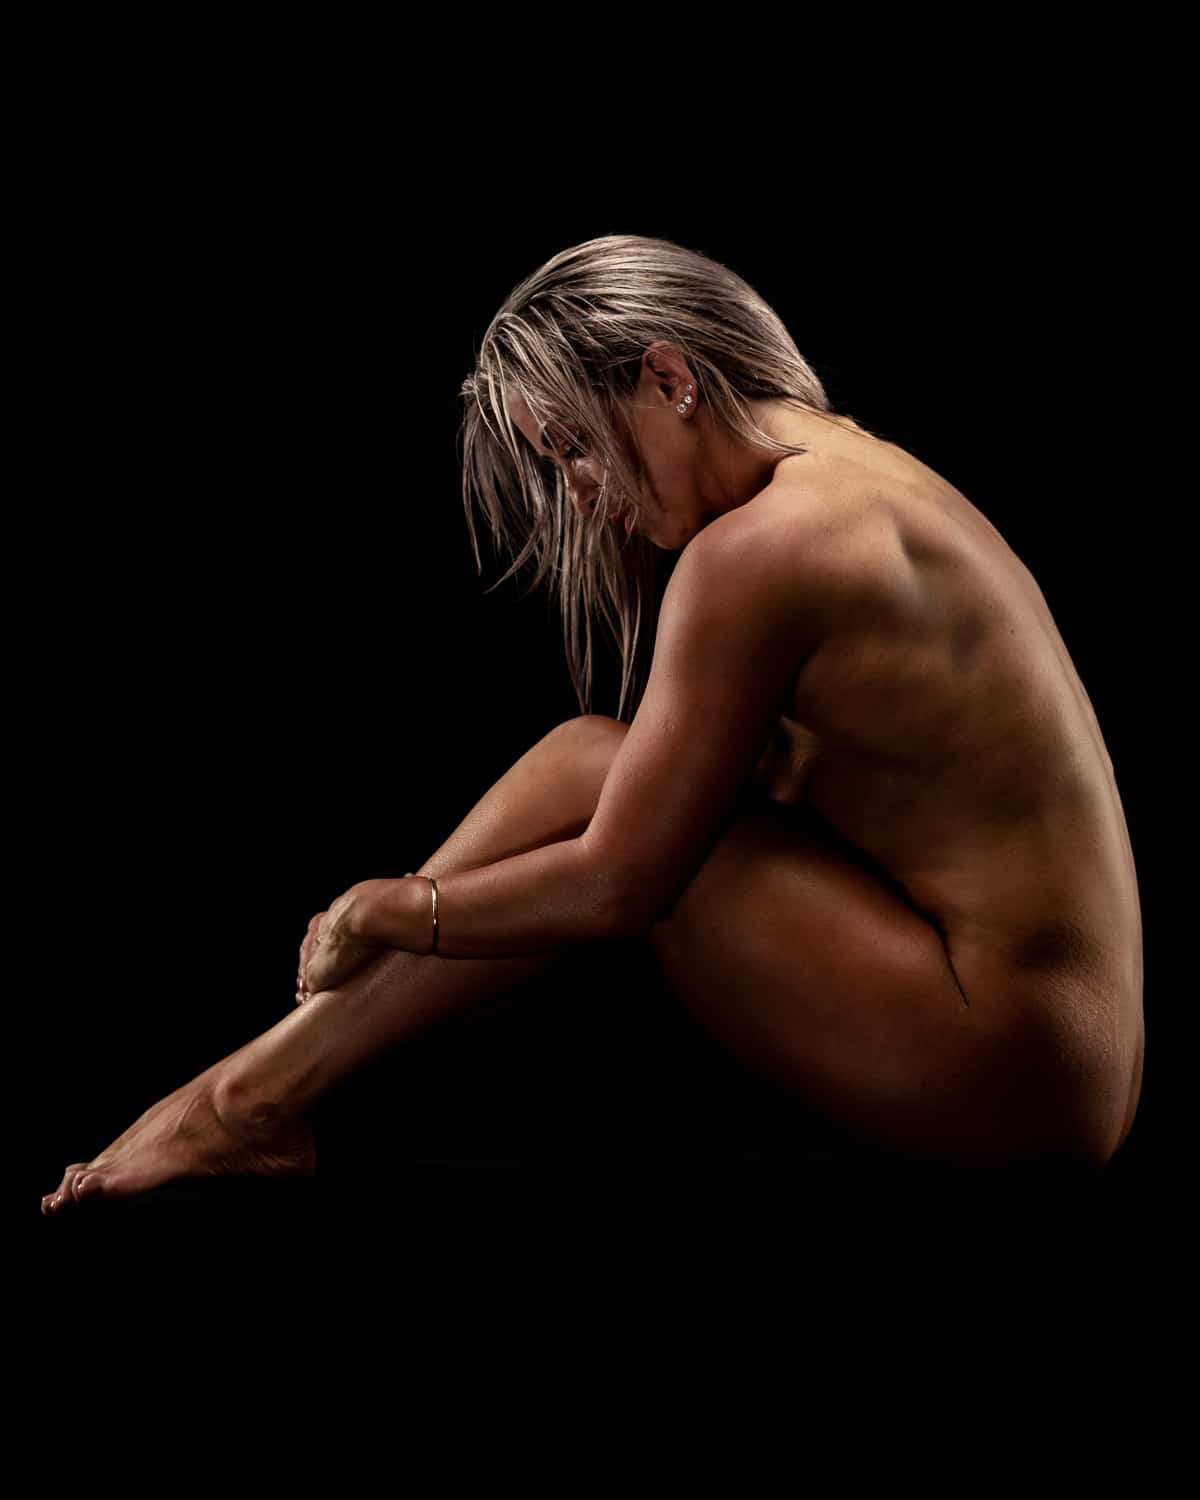 Art Nude FItness Photography